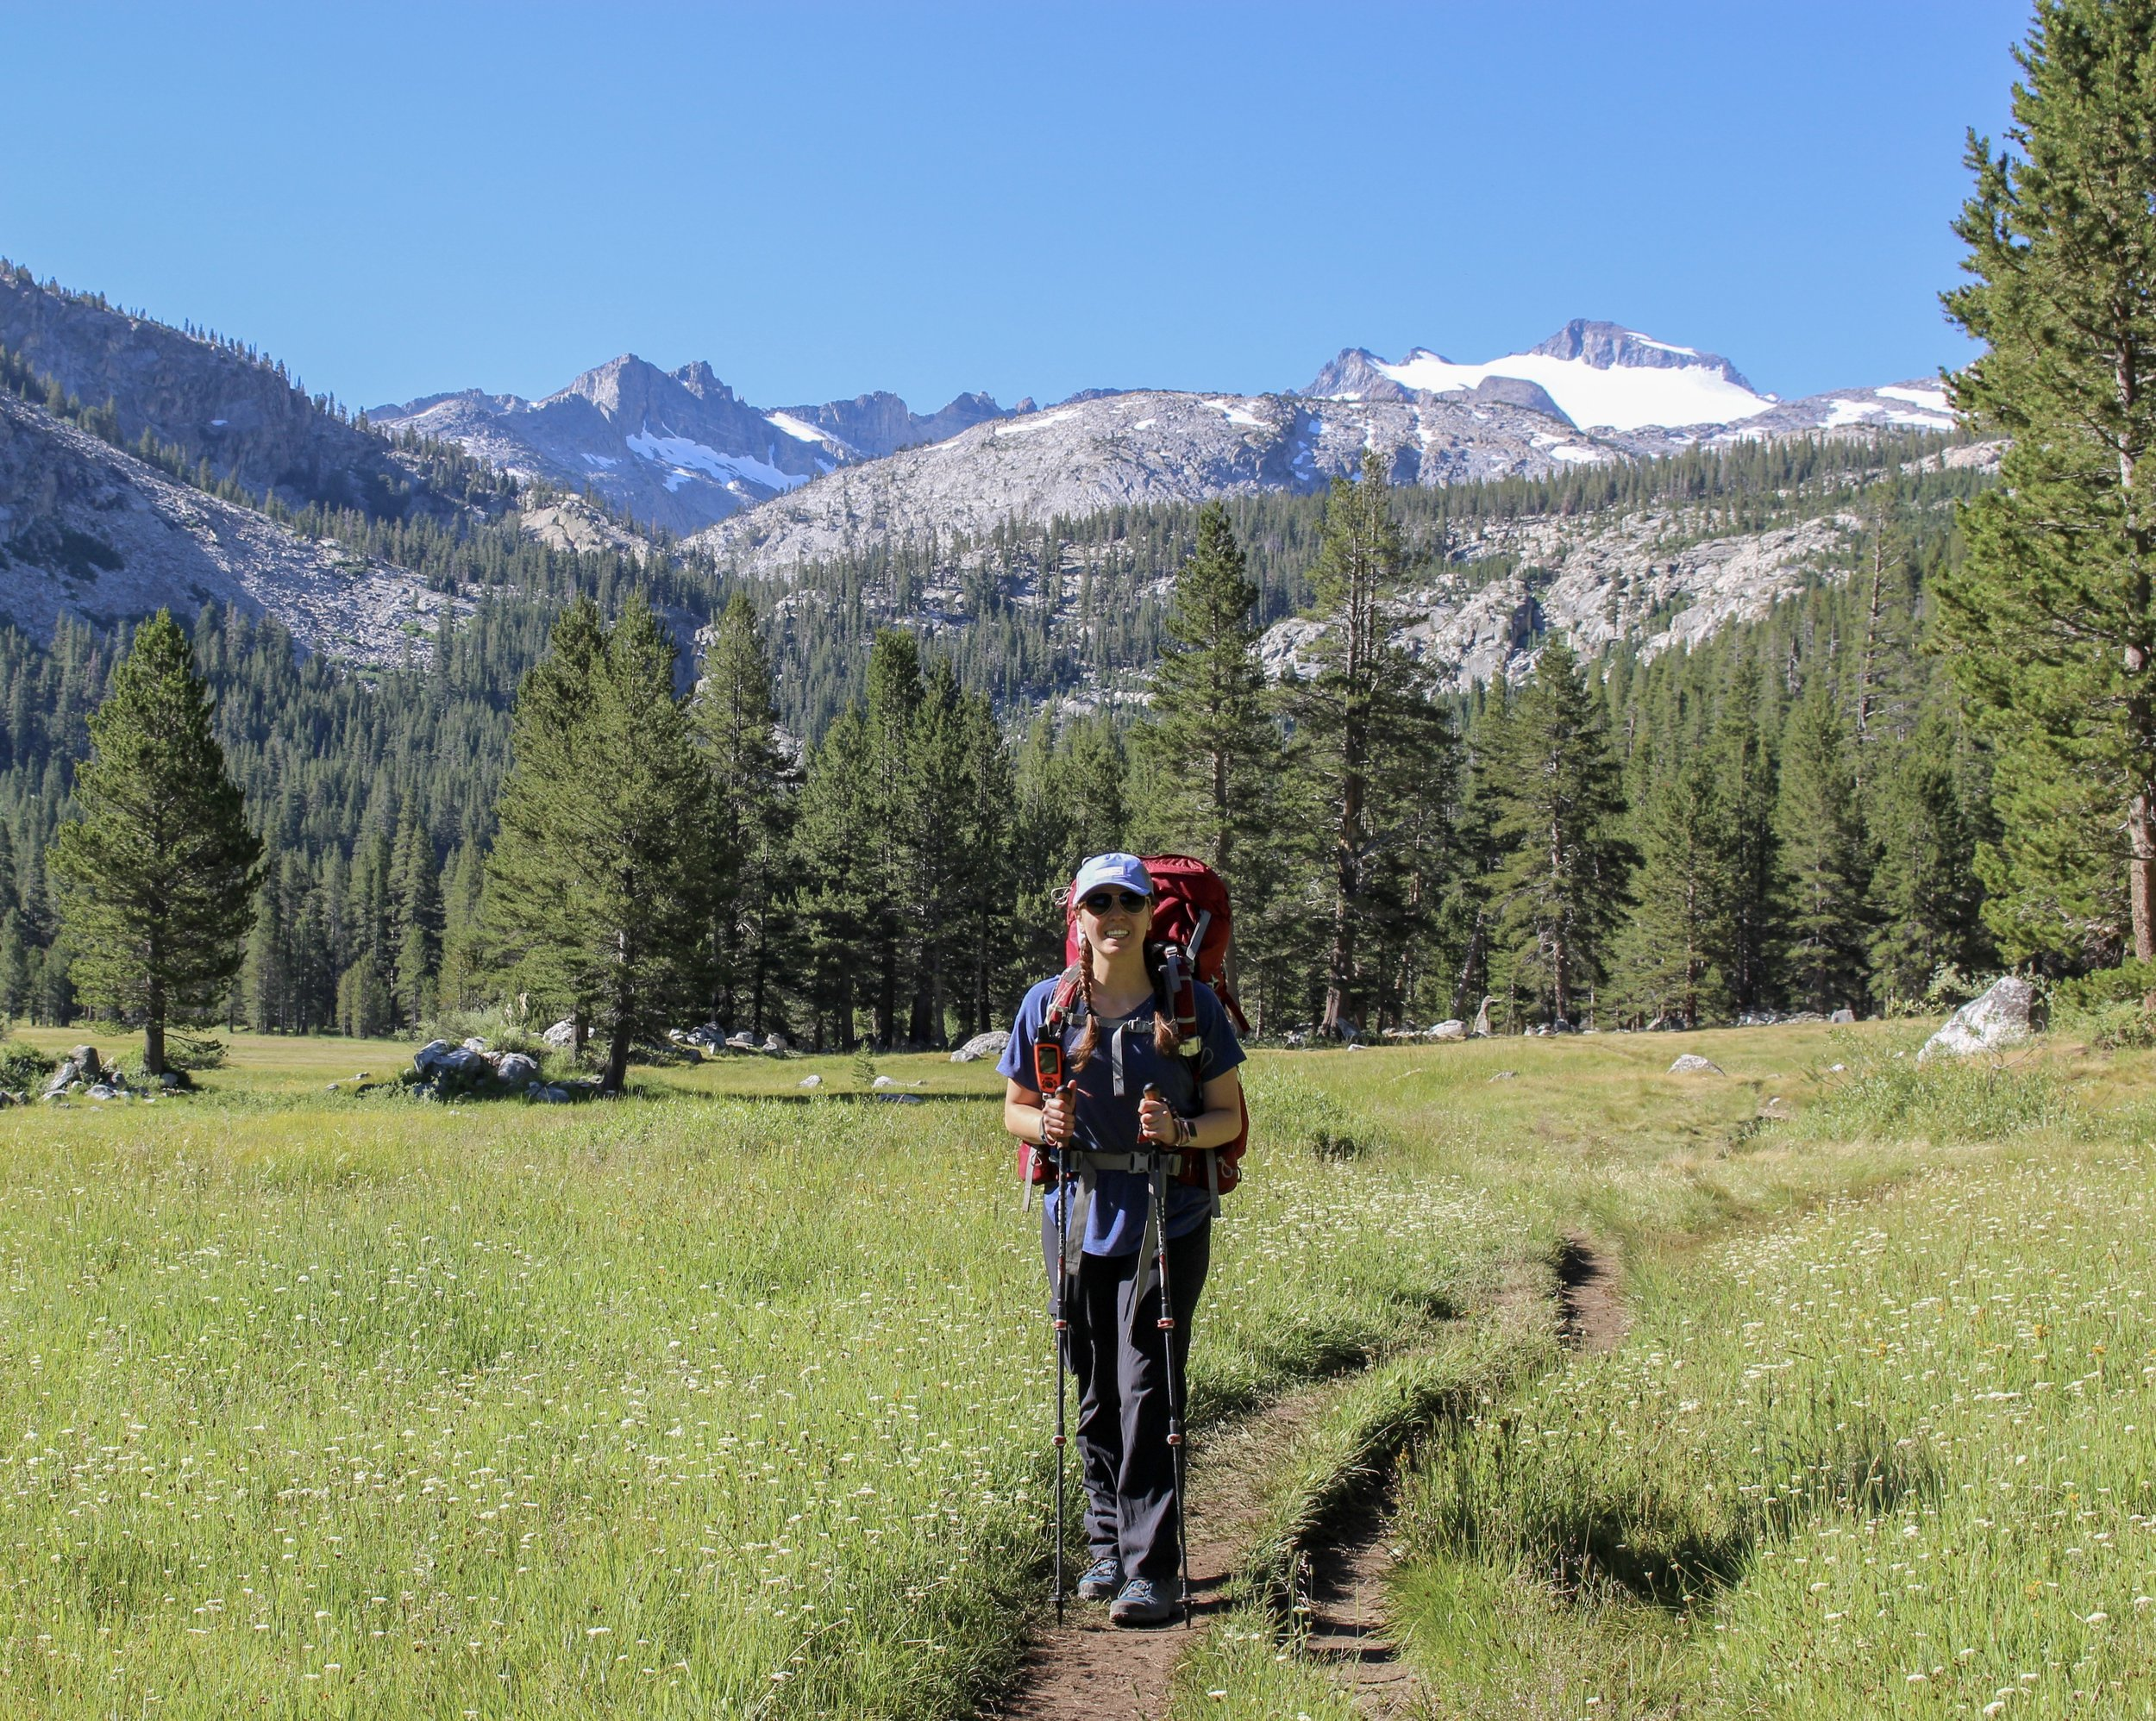 John Muir Trail at Tuolumne Meadow